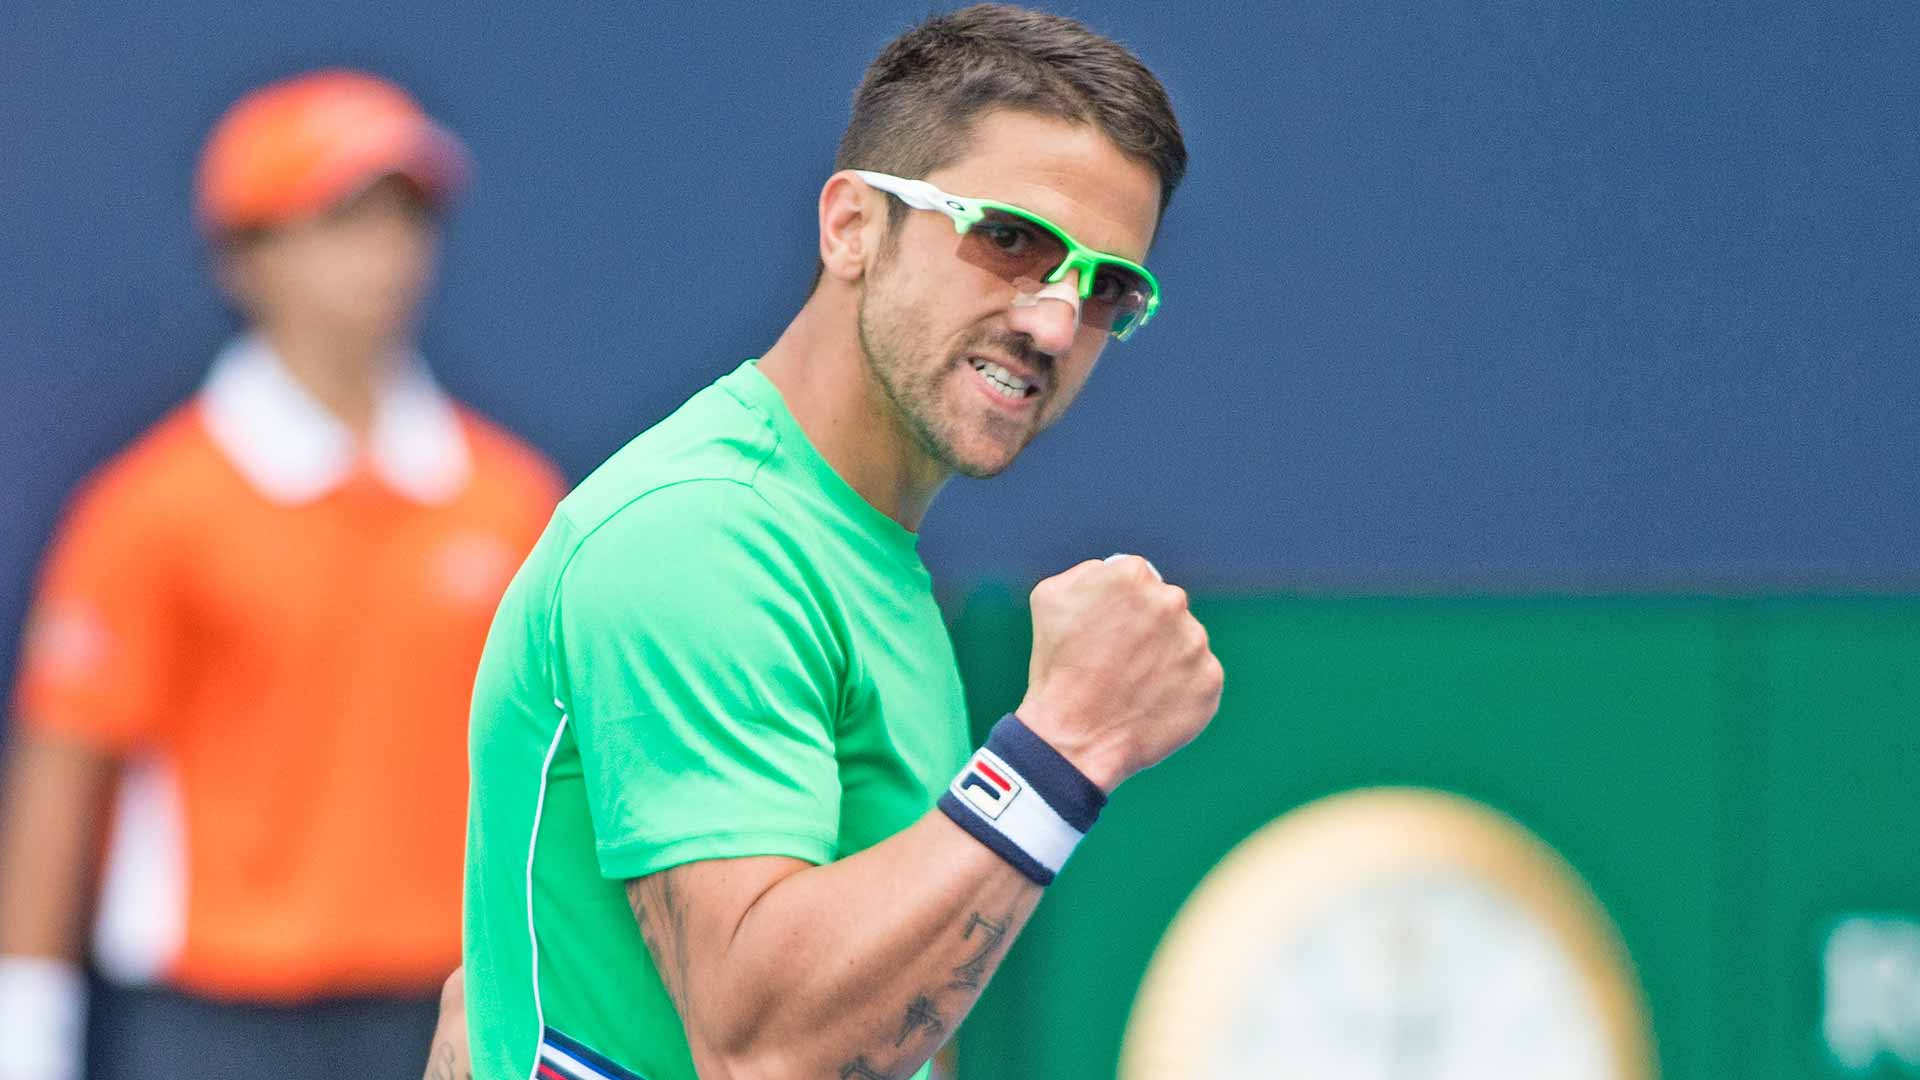 Janko Tipsarevic celebrates his first-round win in Miami